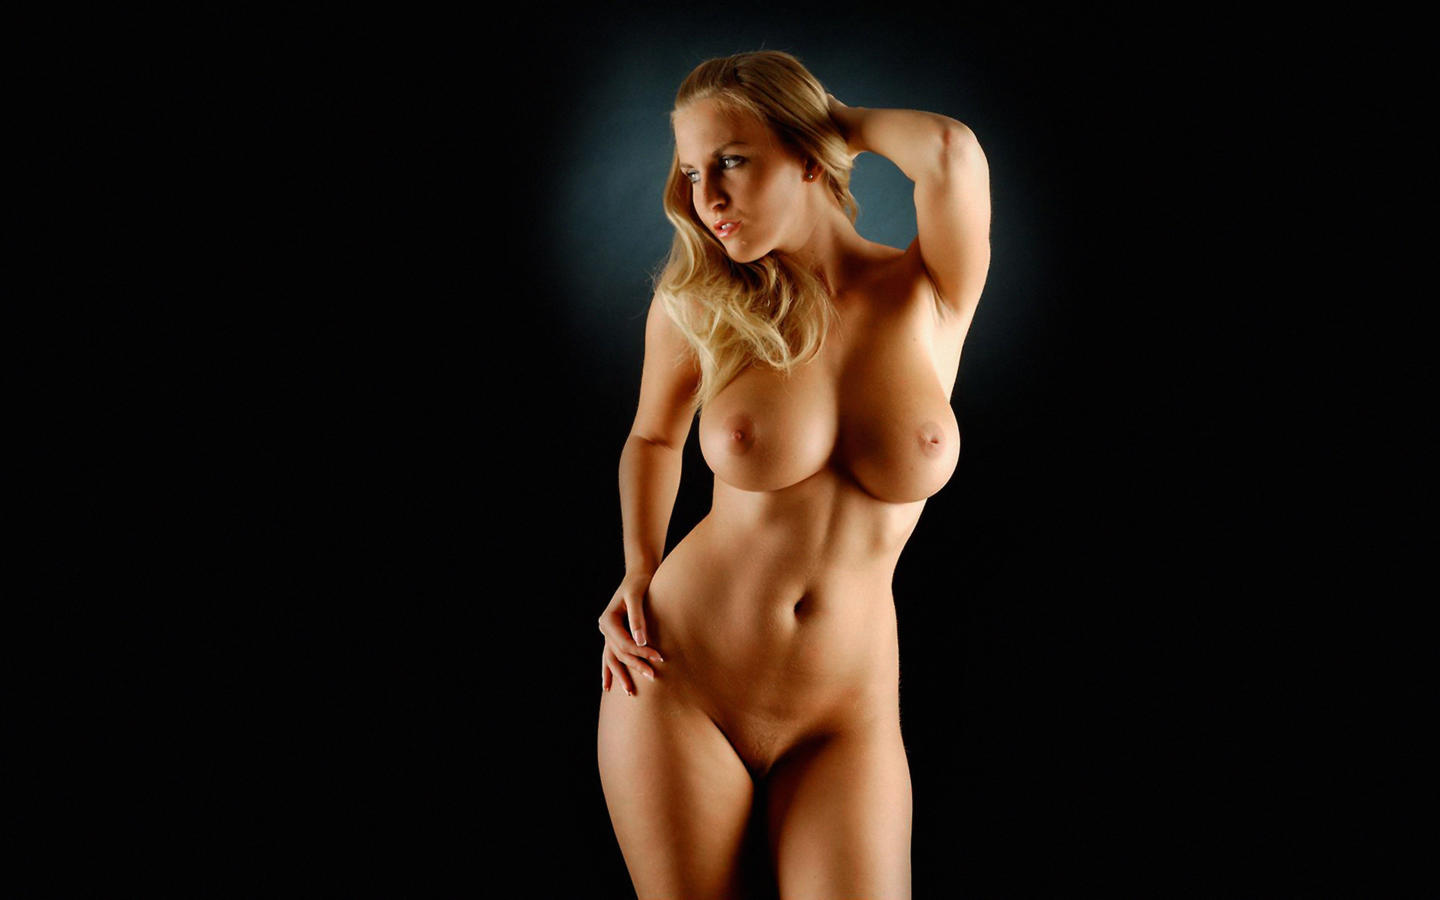 chikita, blonde, big tits, perfect, gorgeous, sexy. huge breasts, nude ...